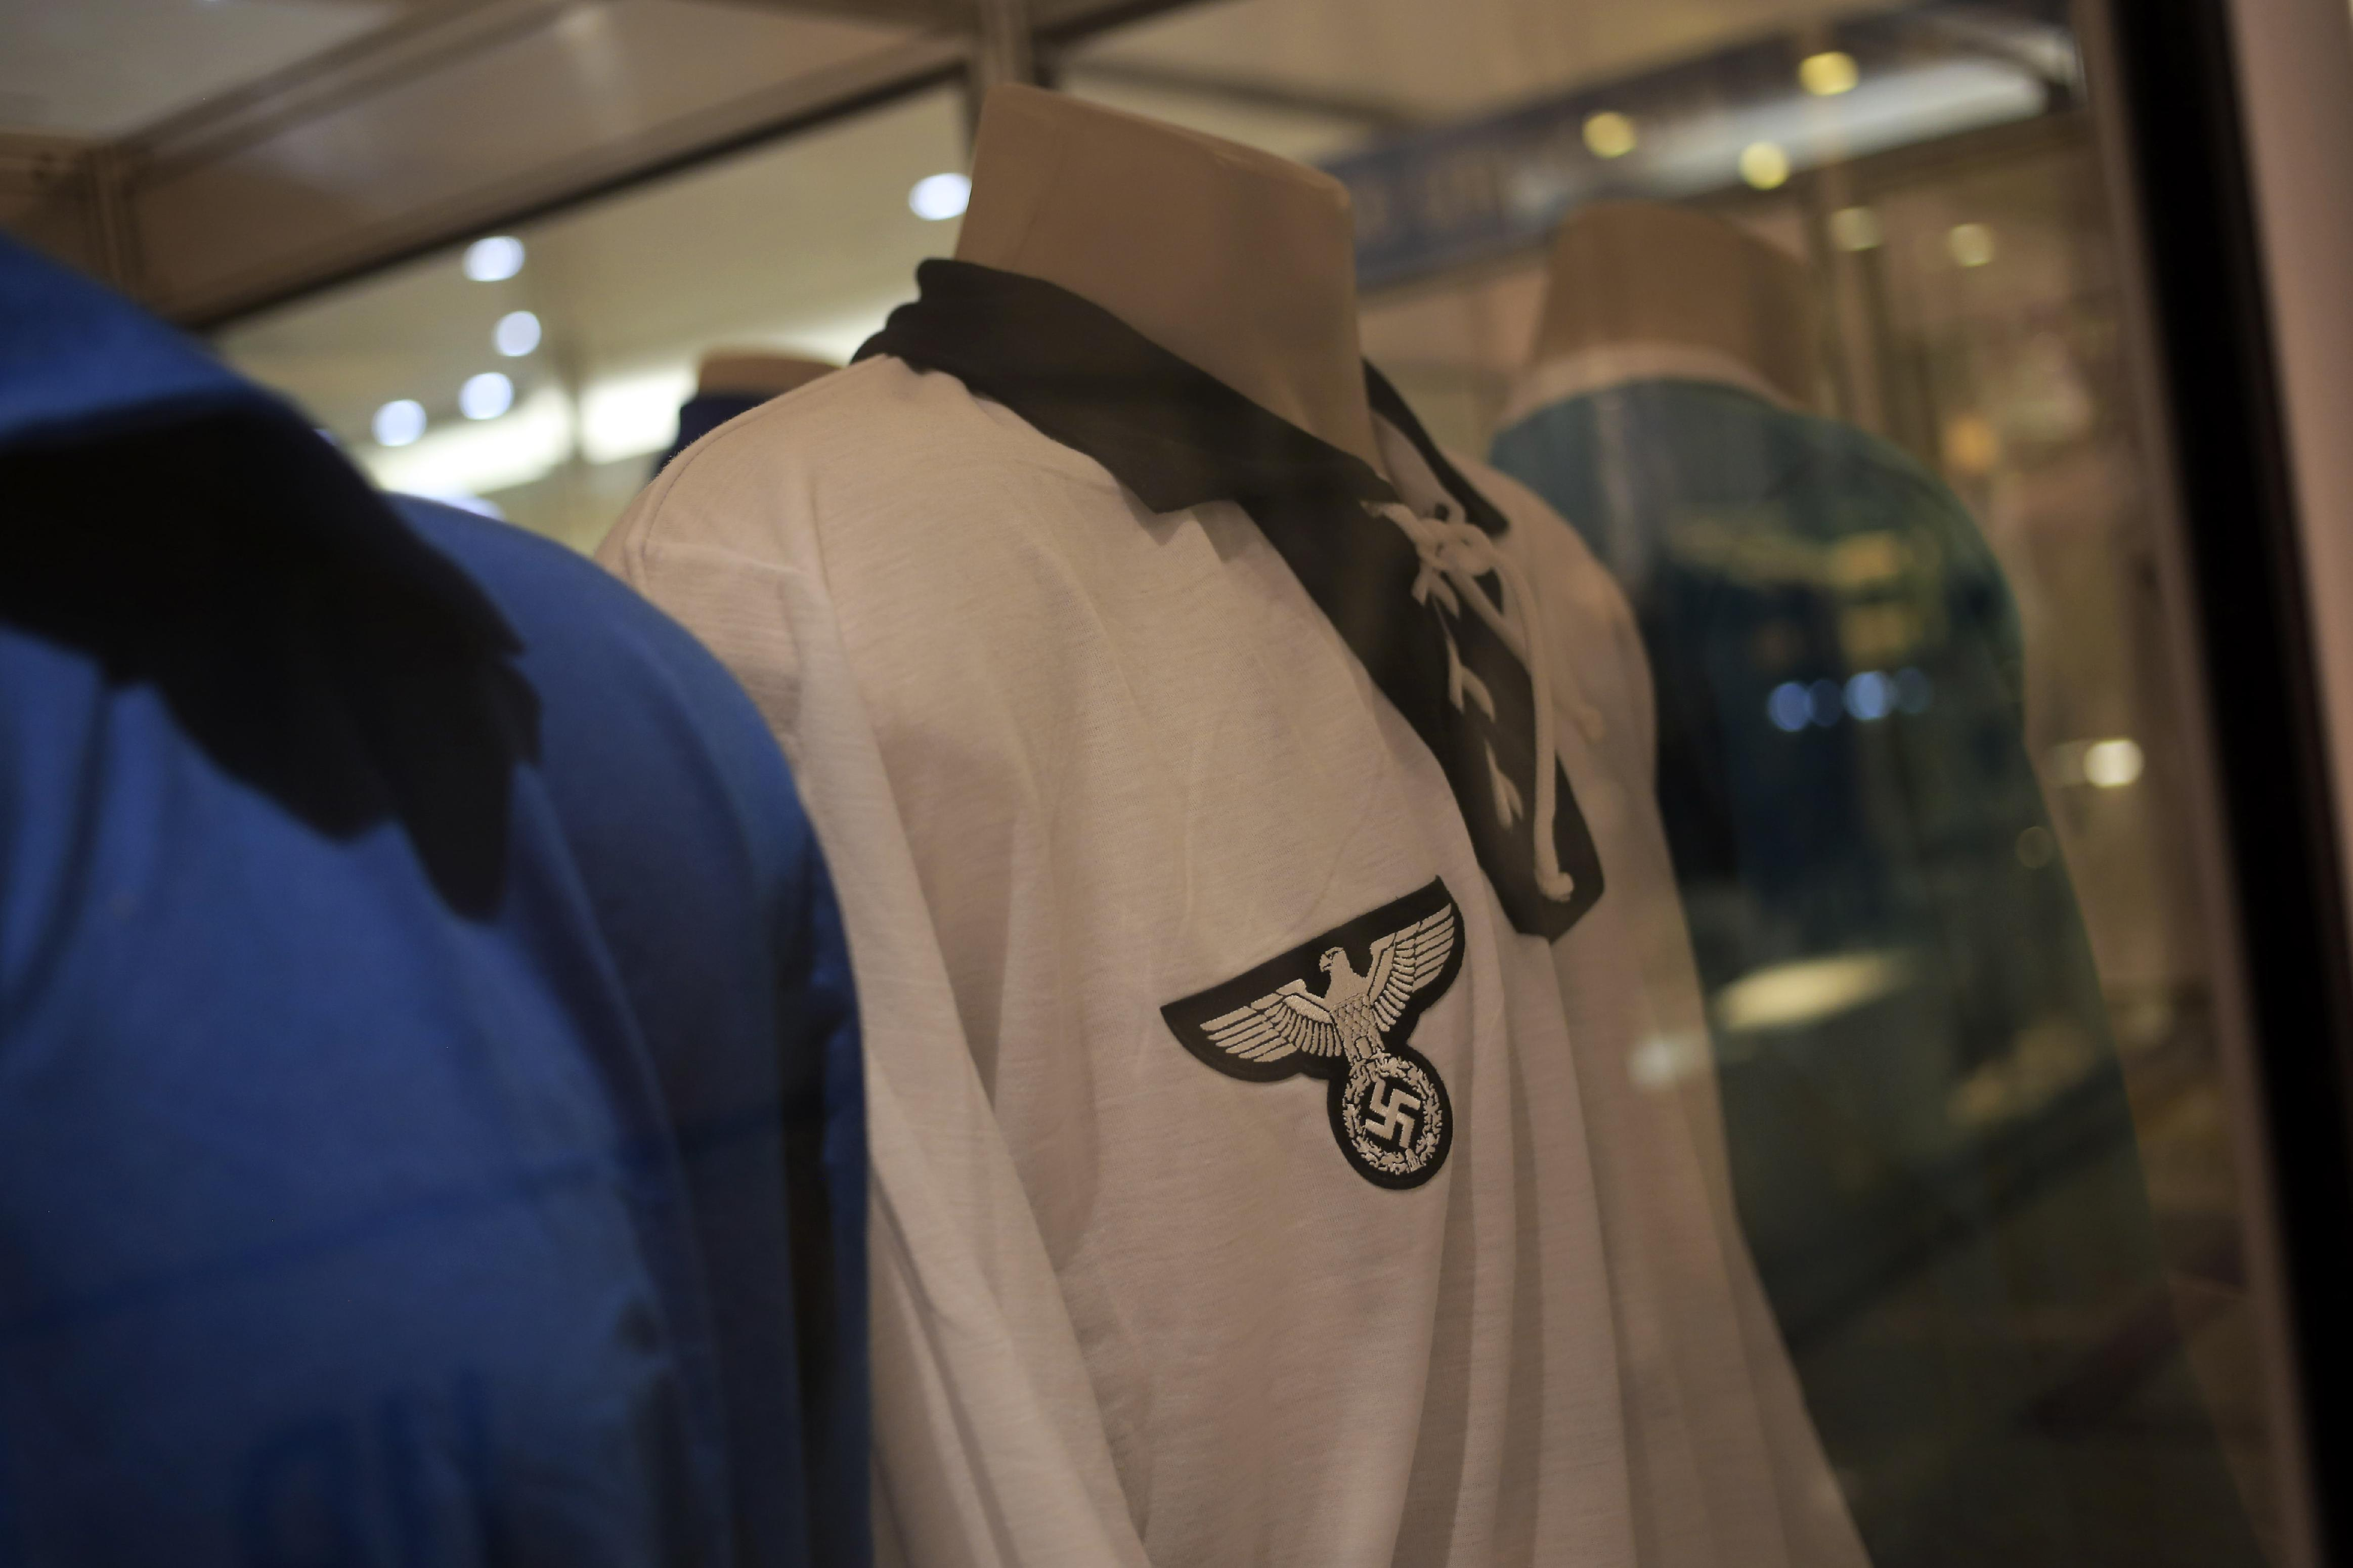 A Germany 1934 FIFA Soccer World Cup team jersey is displayed among other national soccer team jerseys on a shopping mall in Salvador, Brazil, Thursday, June 19, 2014. The nazi eagle and swastica clearly visible on the jersey's breast. (AP Photo/Bernat Armangue)